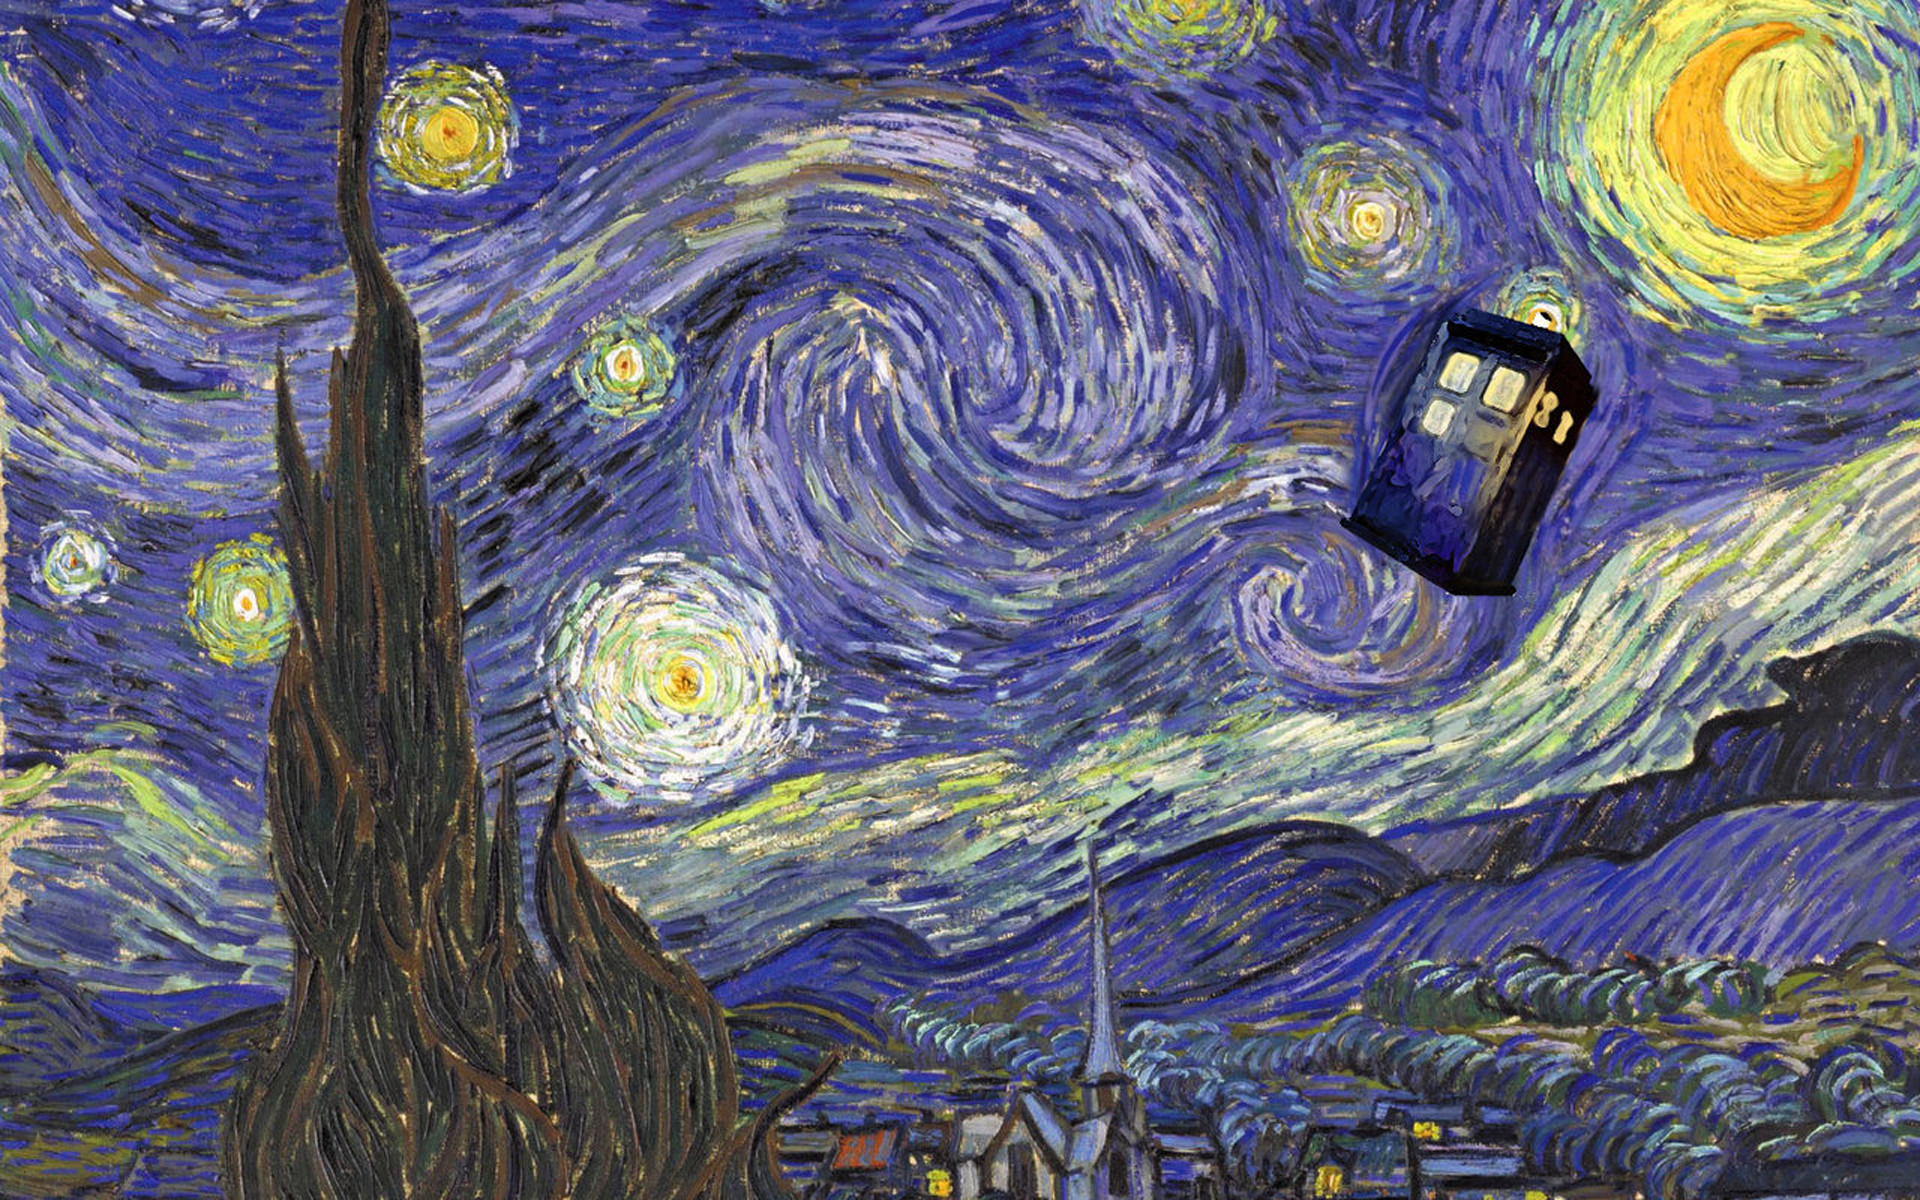 1920x1200 Download Doctor Who - Starry Night 1920 X 1200 Wallpapers - 2799971 - Doctor_Who stars